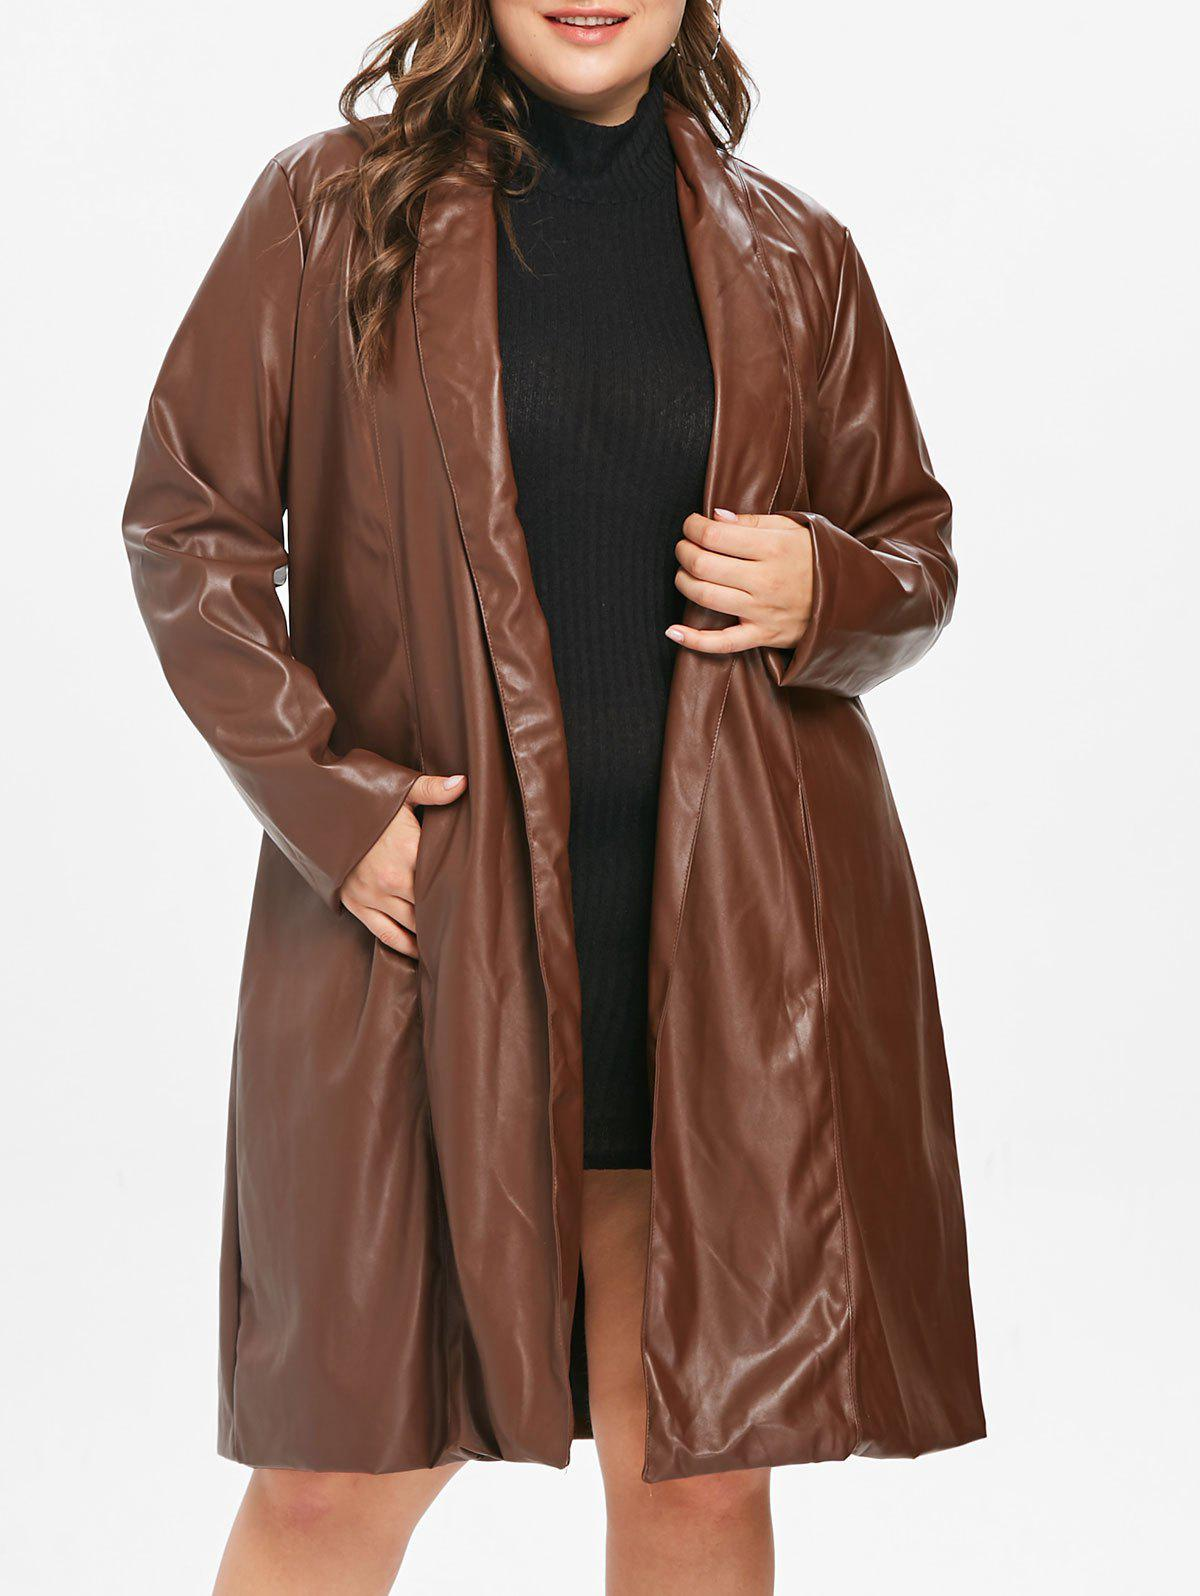 Plus Size Faux Leather Long Coat - PUCE L